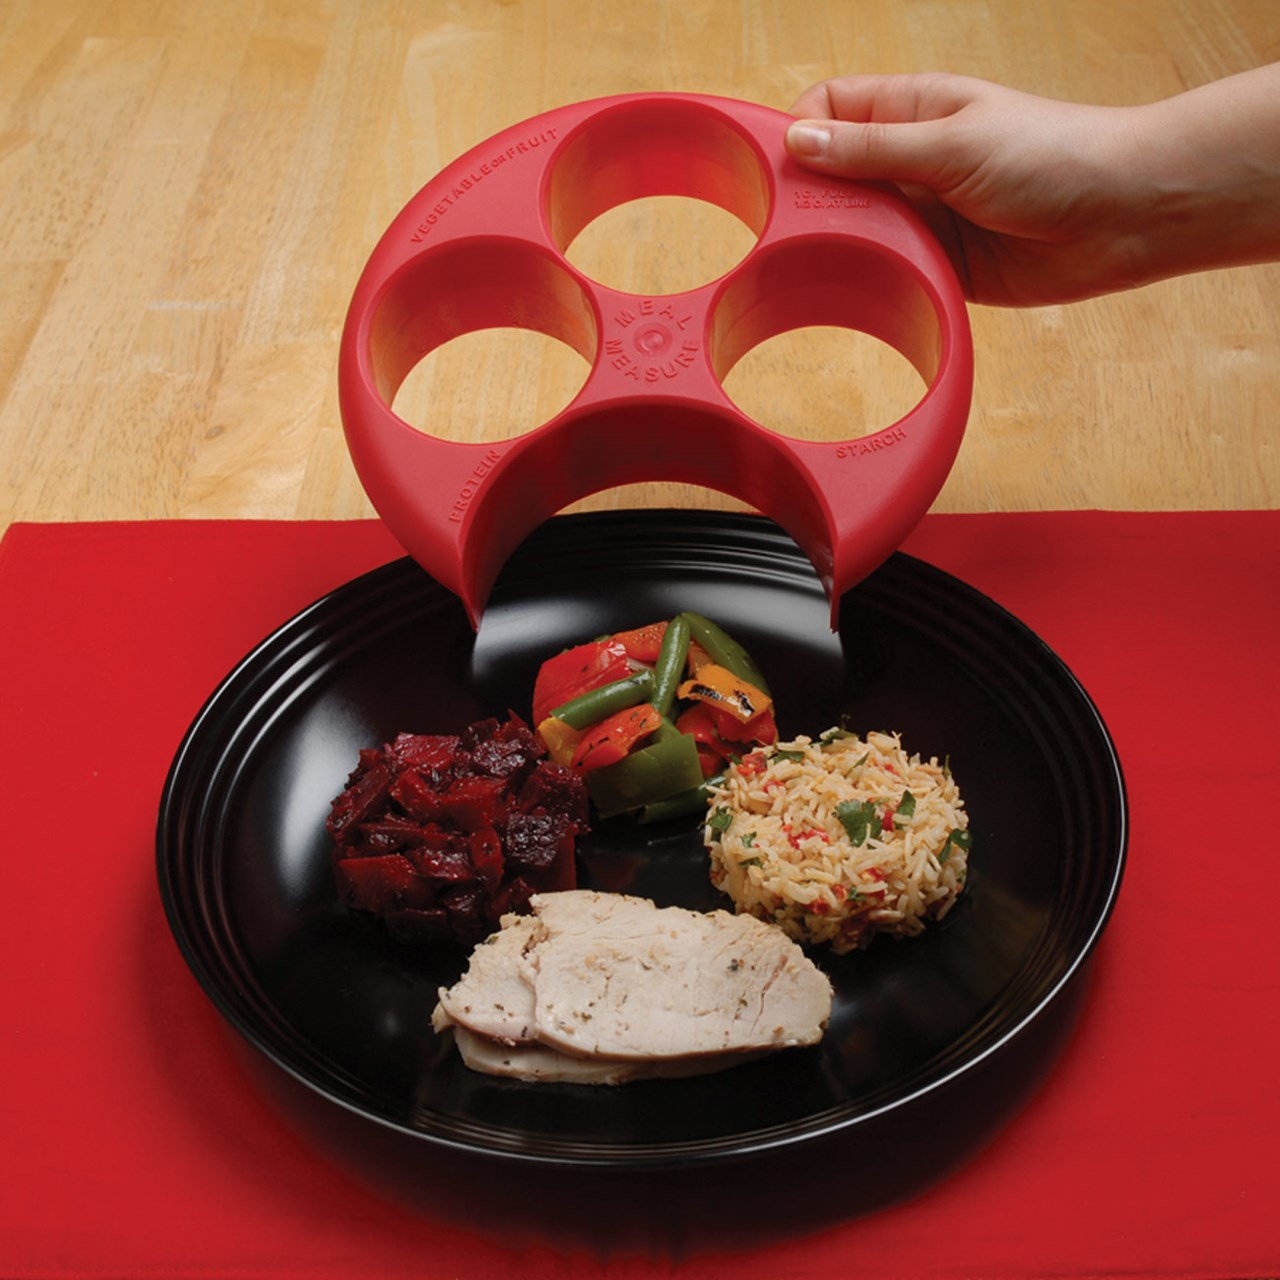 Maxiaids Meal Measure Portion Control System Red